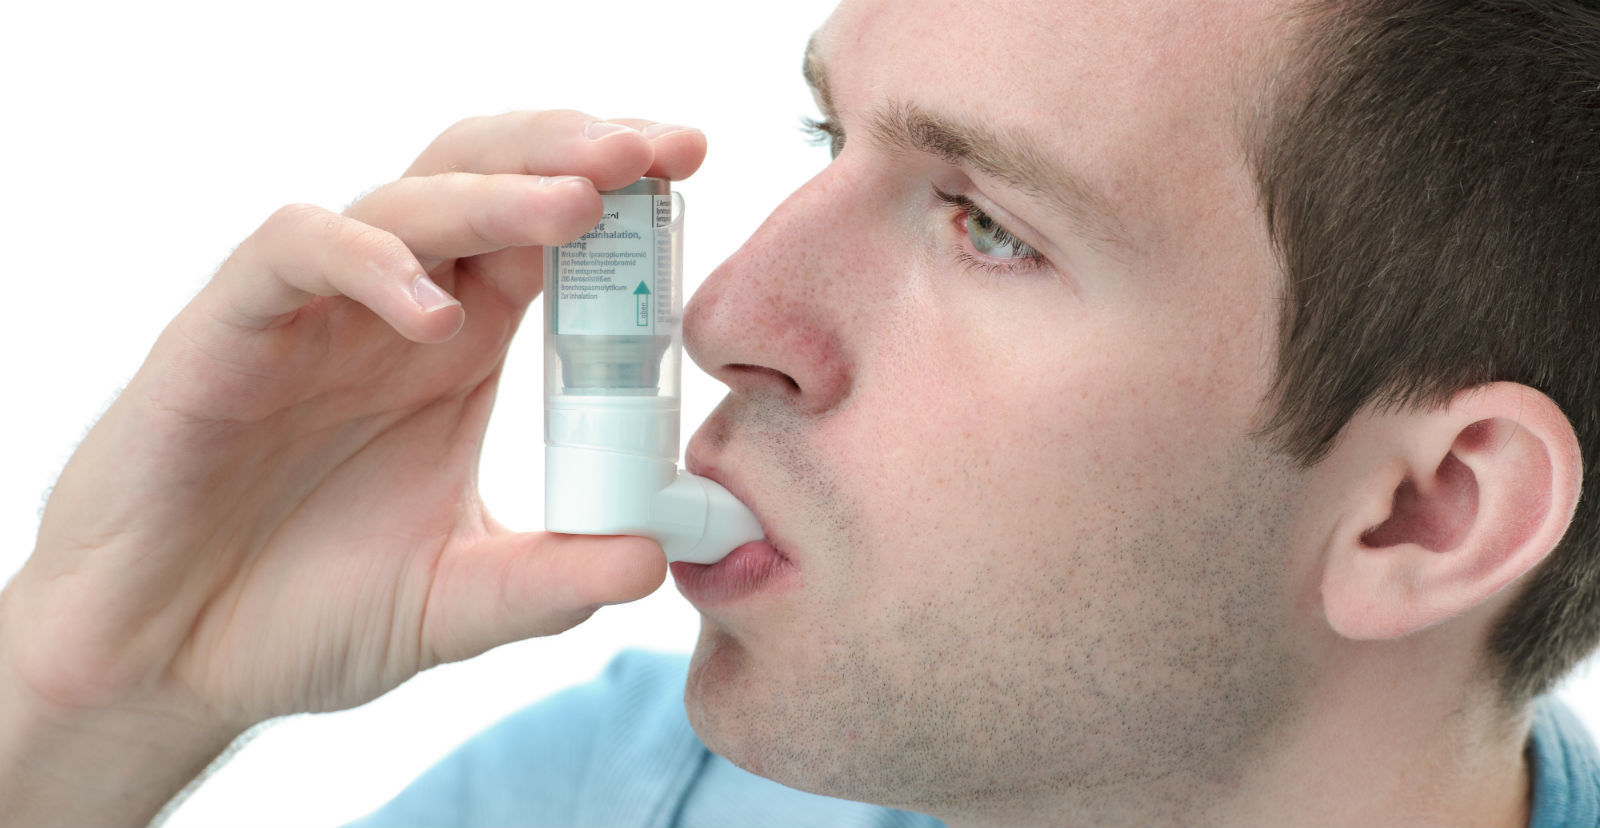 Echo-NHS-Healthcare-Man-Using-Ashtma-Inhaler